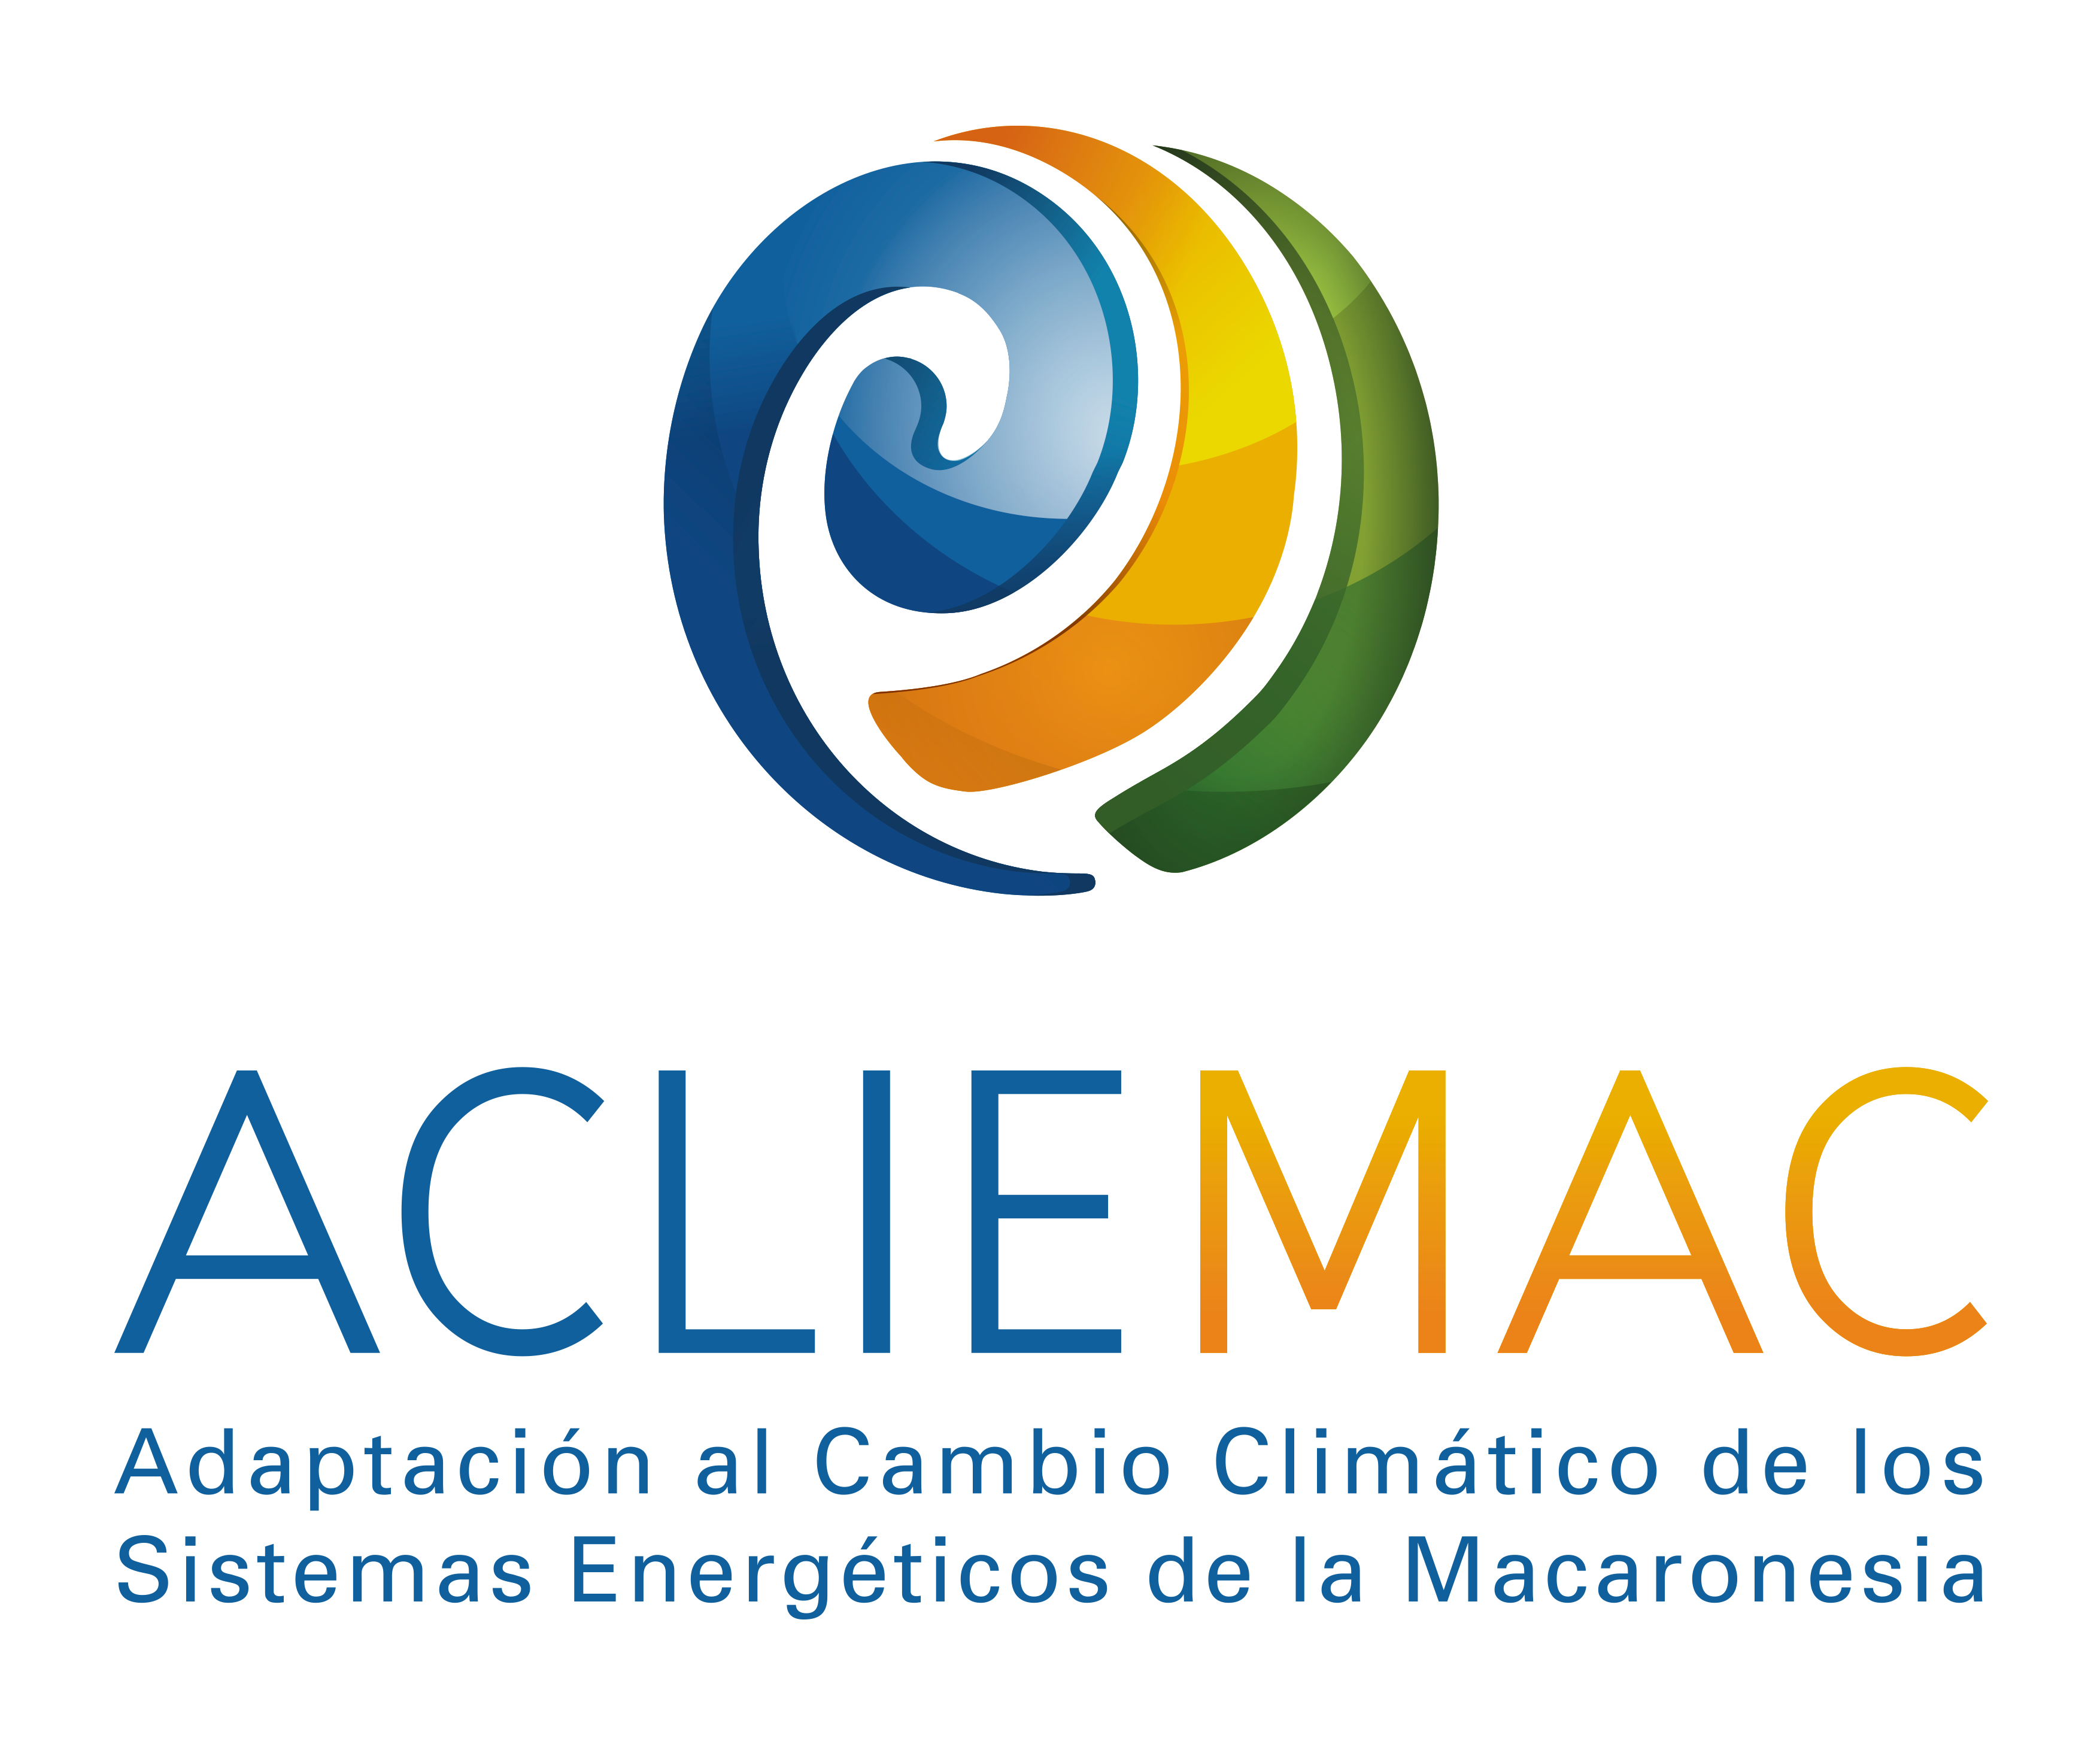 ACLIEMAC, project for adaptation to climate change in the energy systems of the Macaronesia